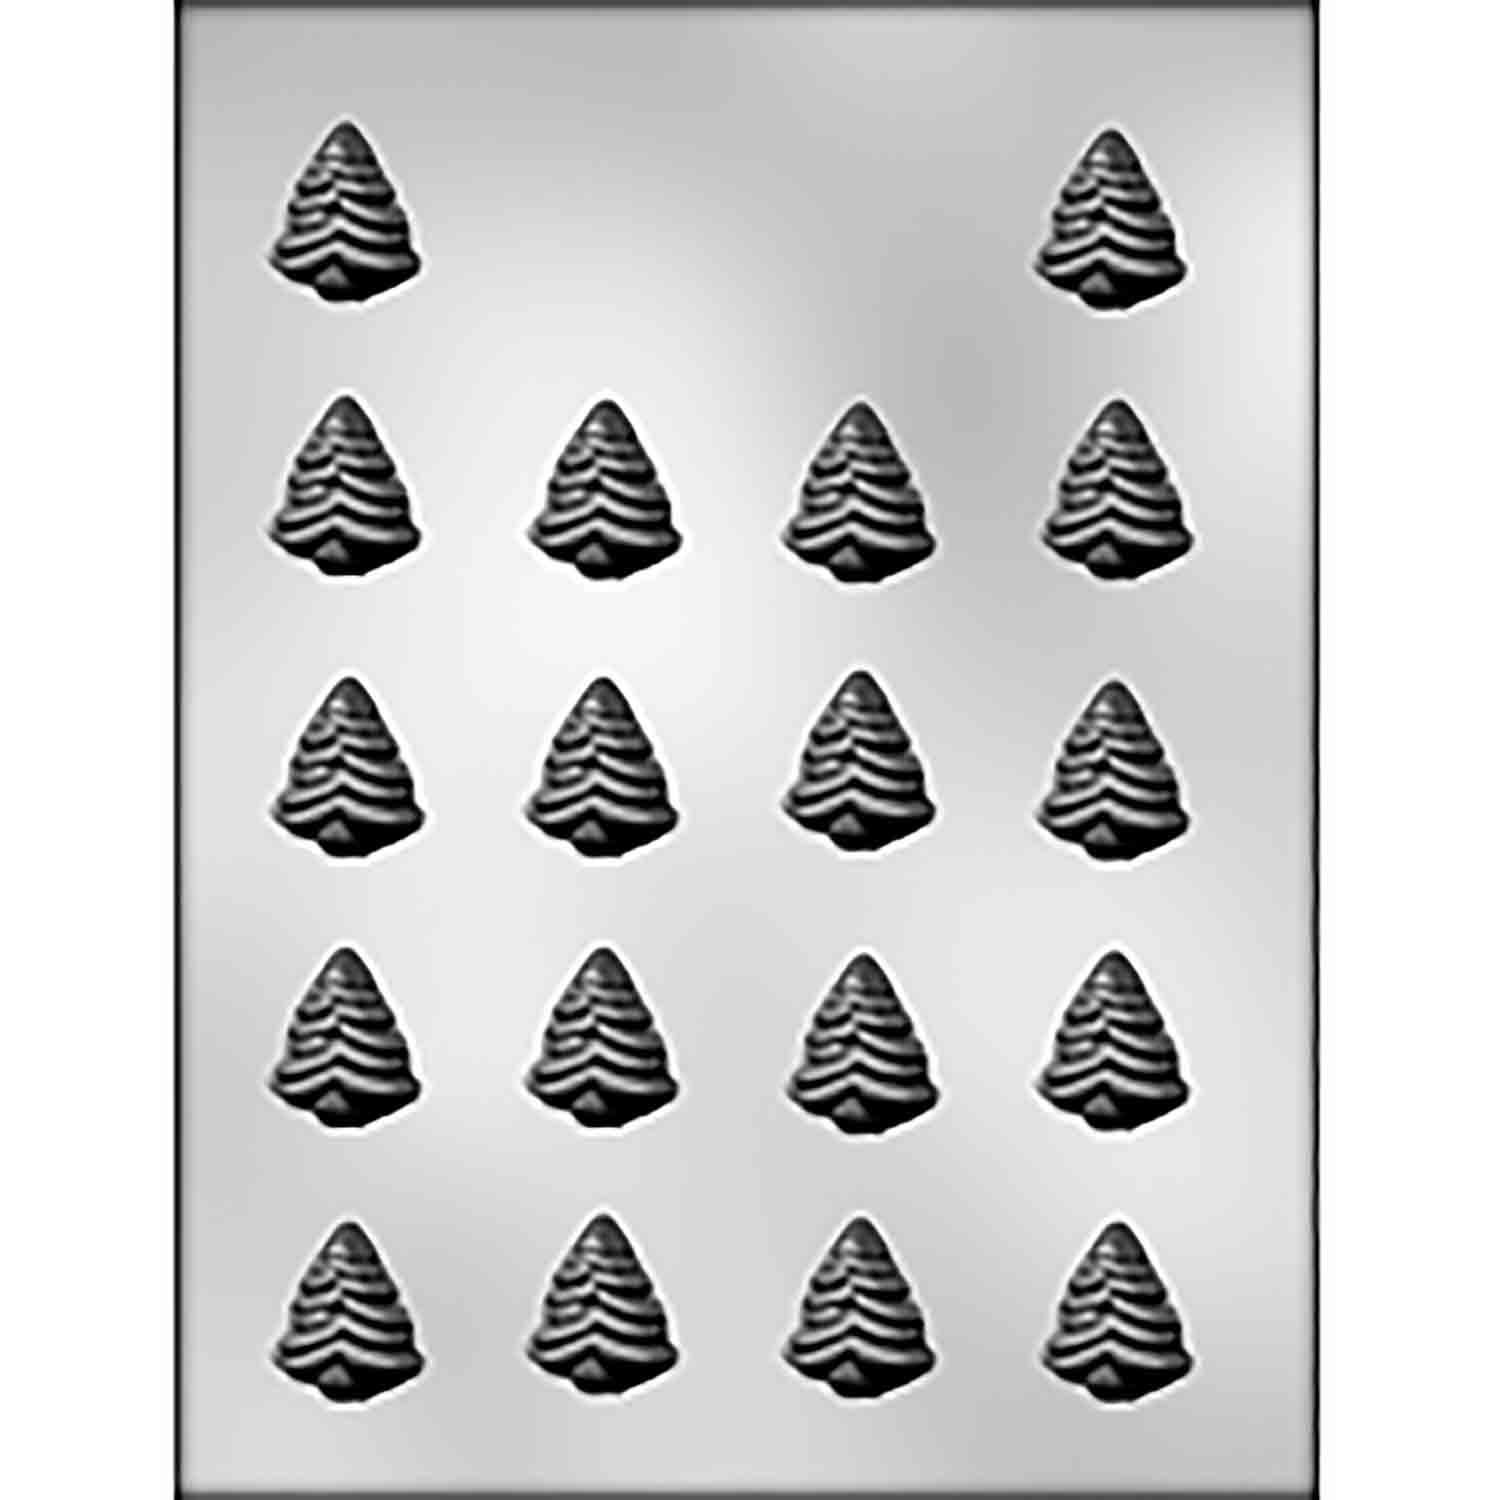 Evergreen Trees Chocolate Candy Mold